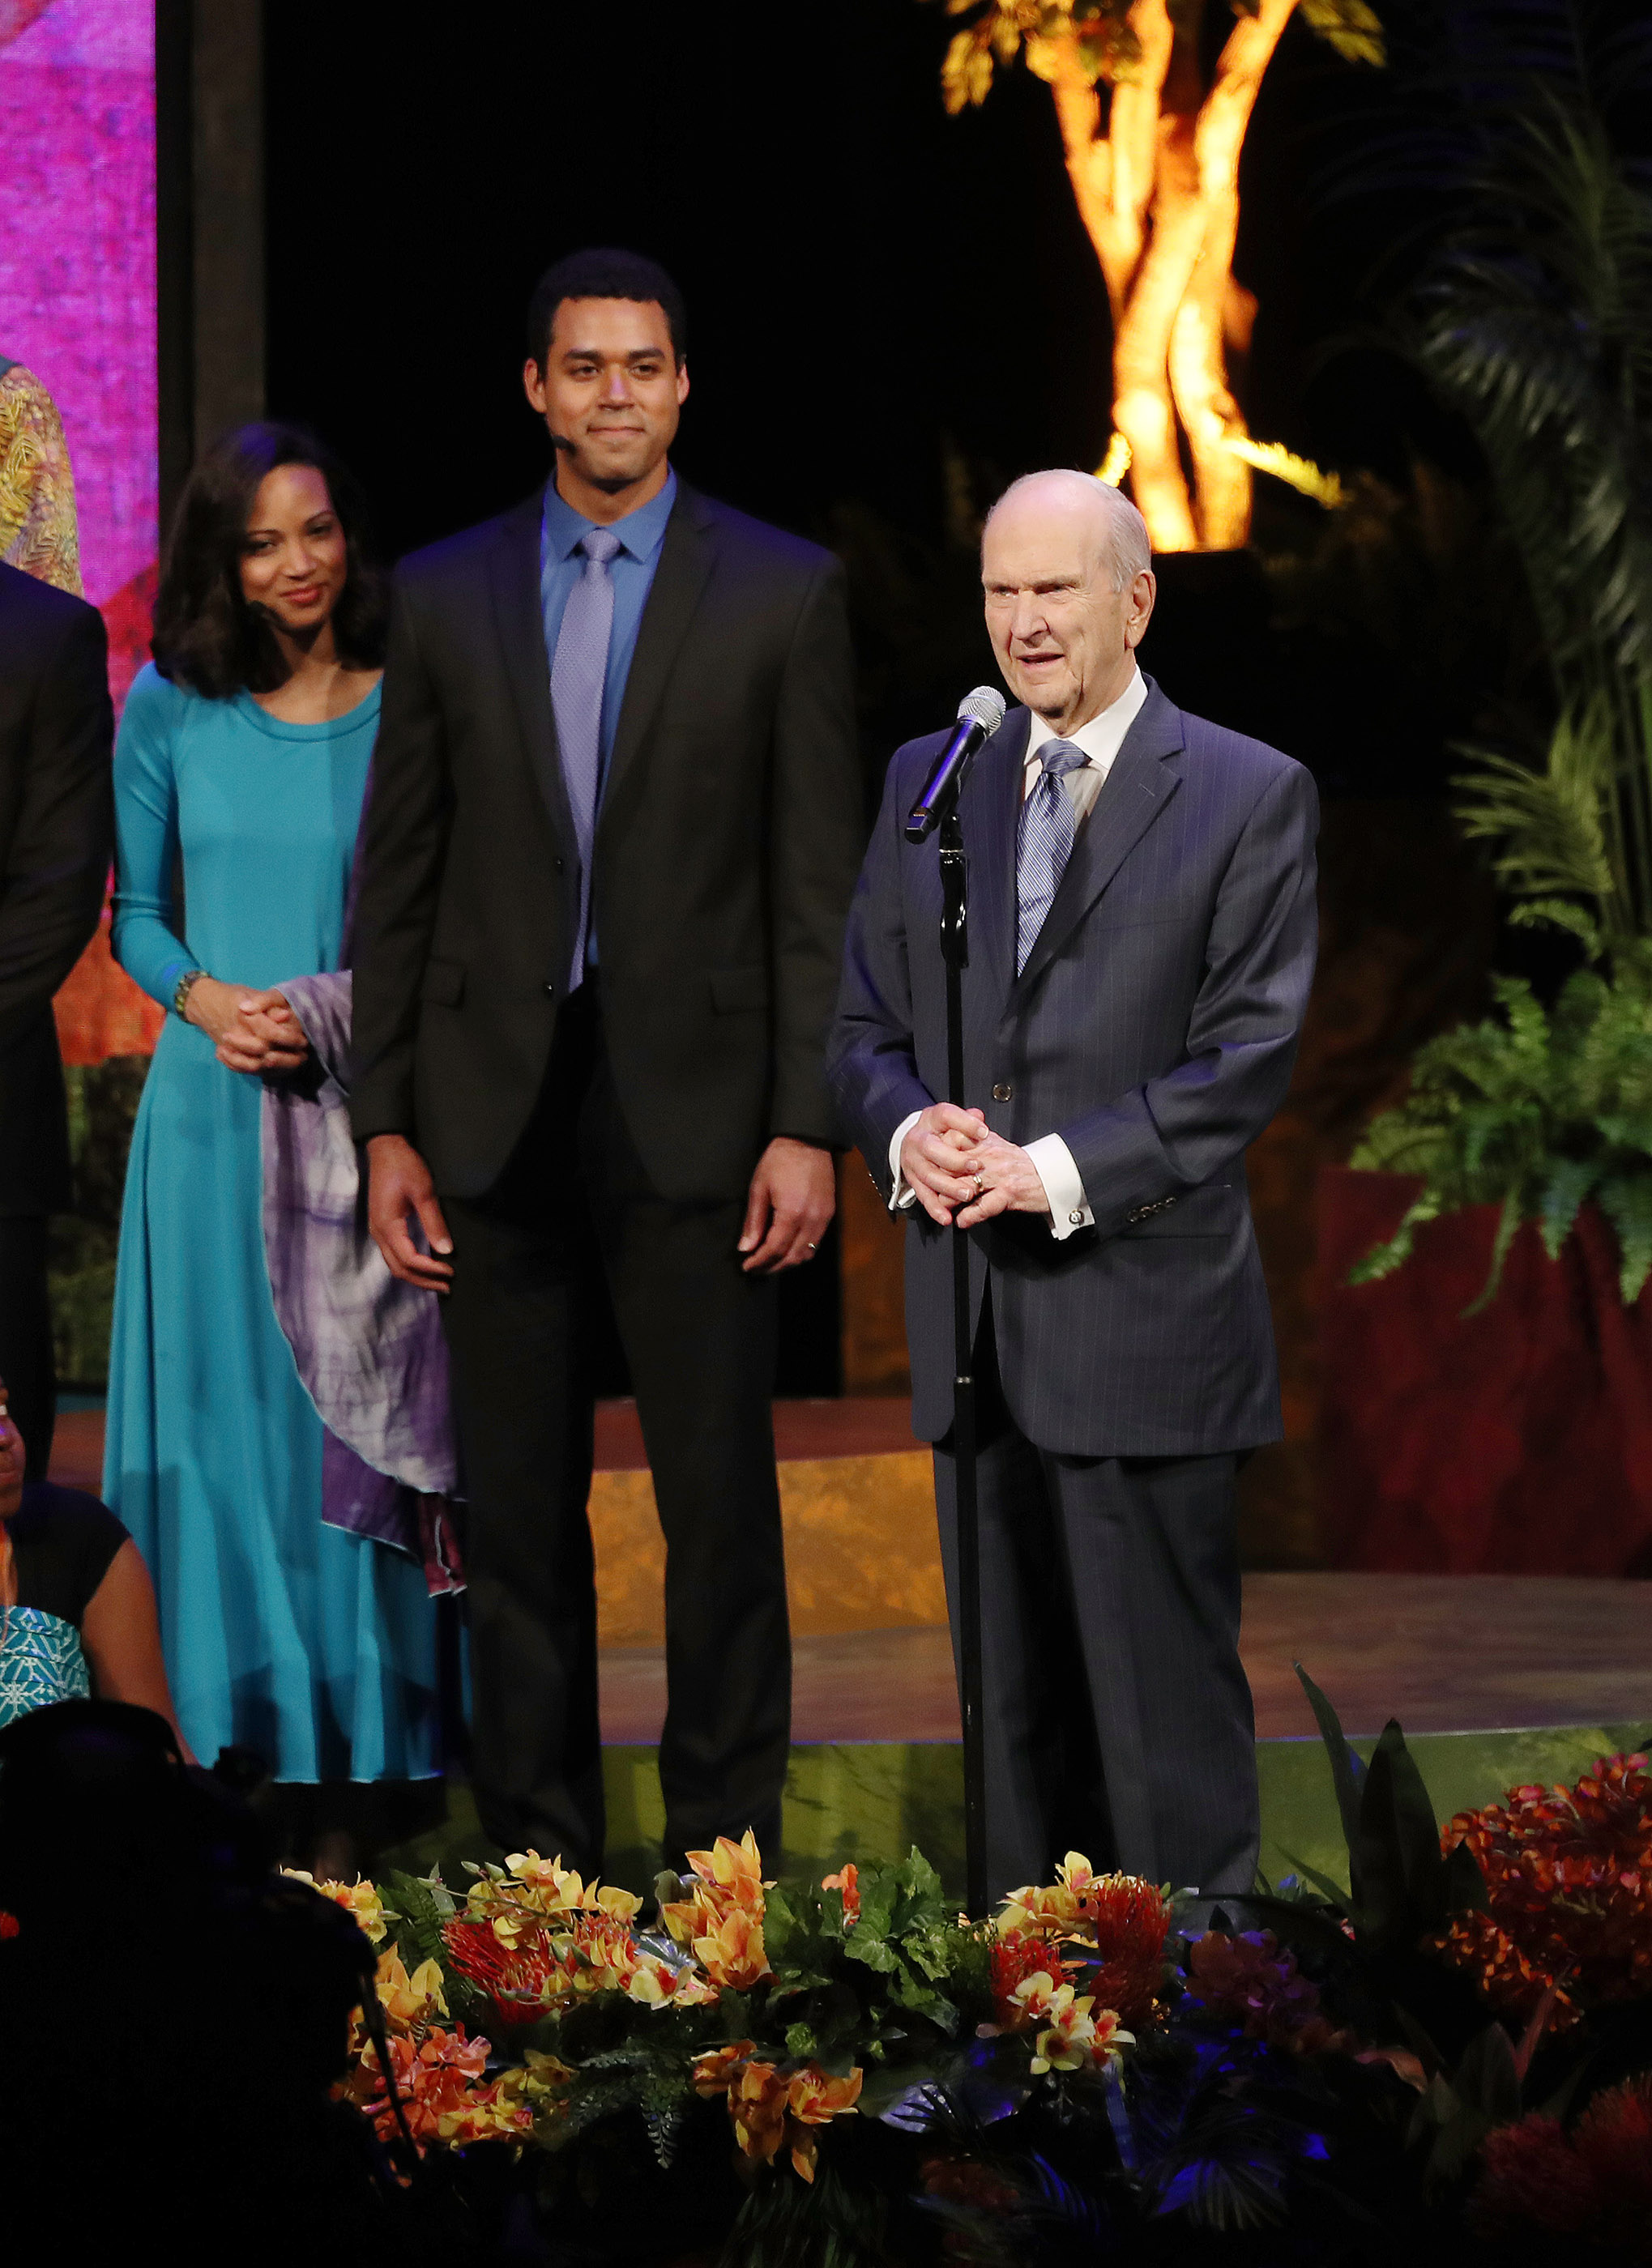 """President Russell M. Nelson speaks at the """"Be One"""" event at the Conference Center in Salt Lake City on Friday, June 1, 2018. The event celebrated the 40th anniversary of the 1978 revelation on the priesthood."""